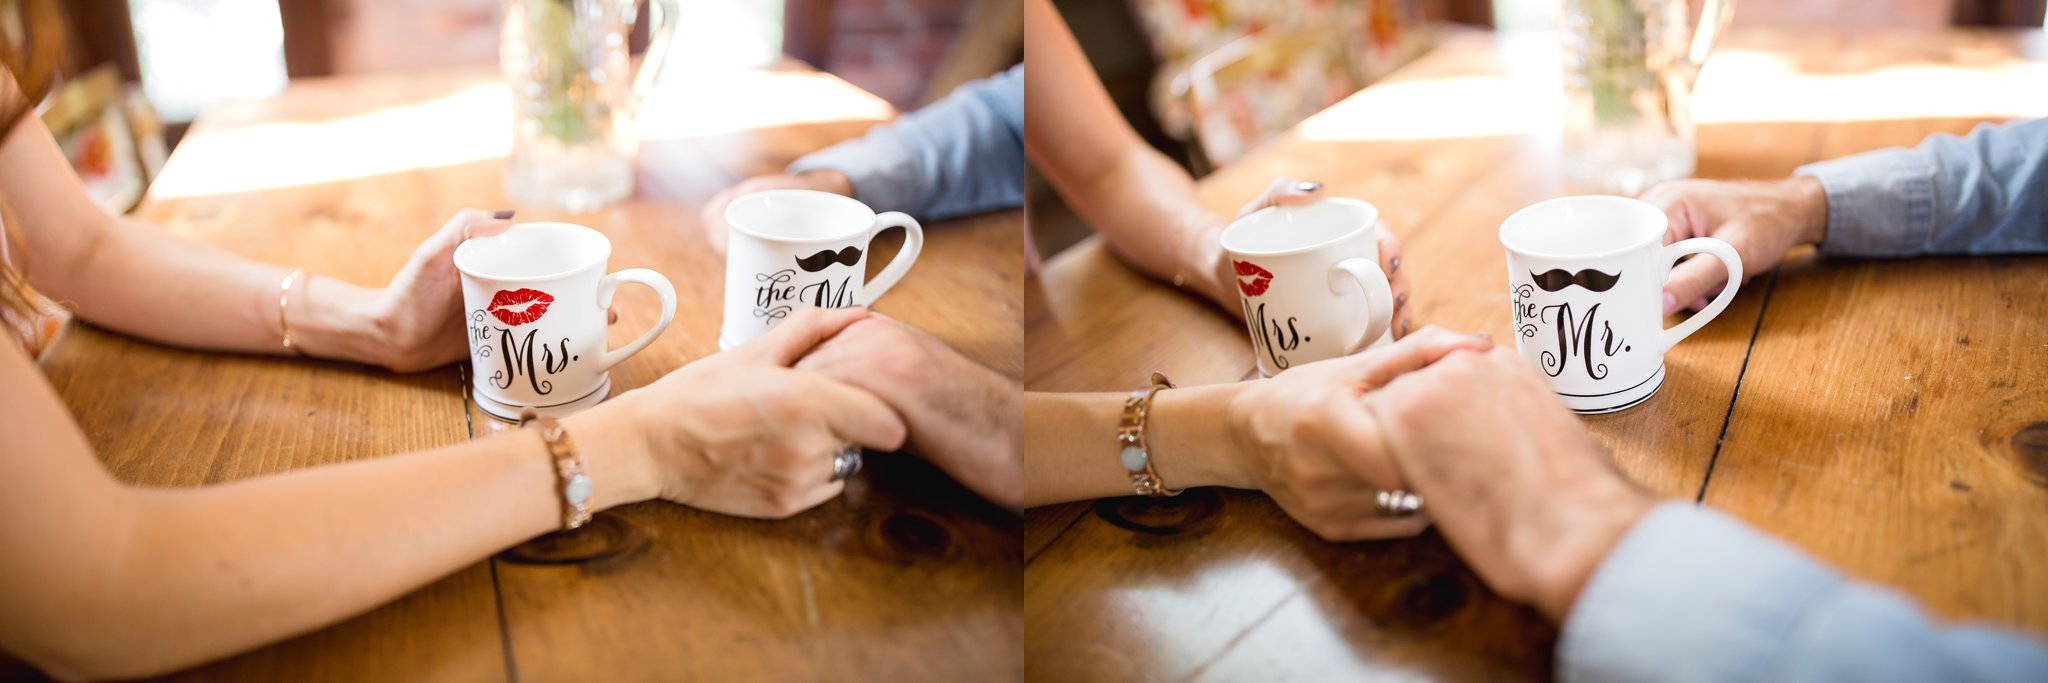 Indoor-Intimate-Engagement-Session19.jpg